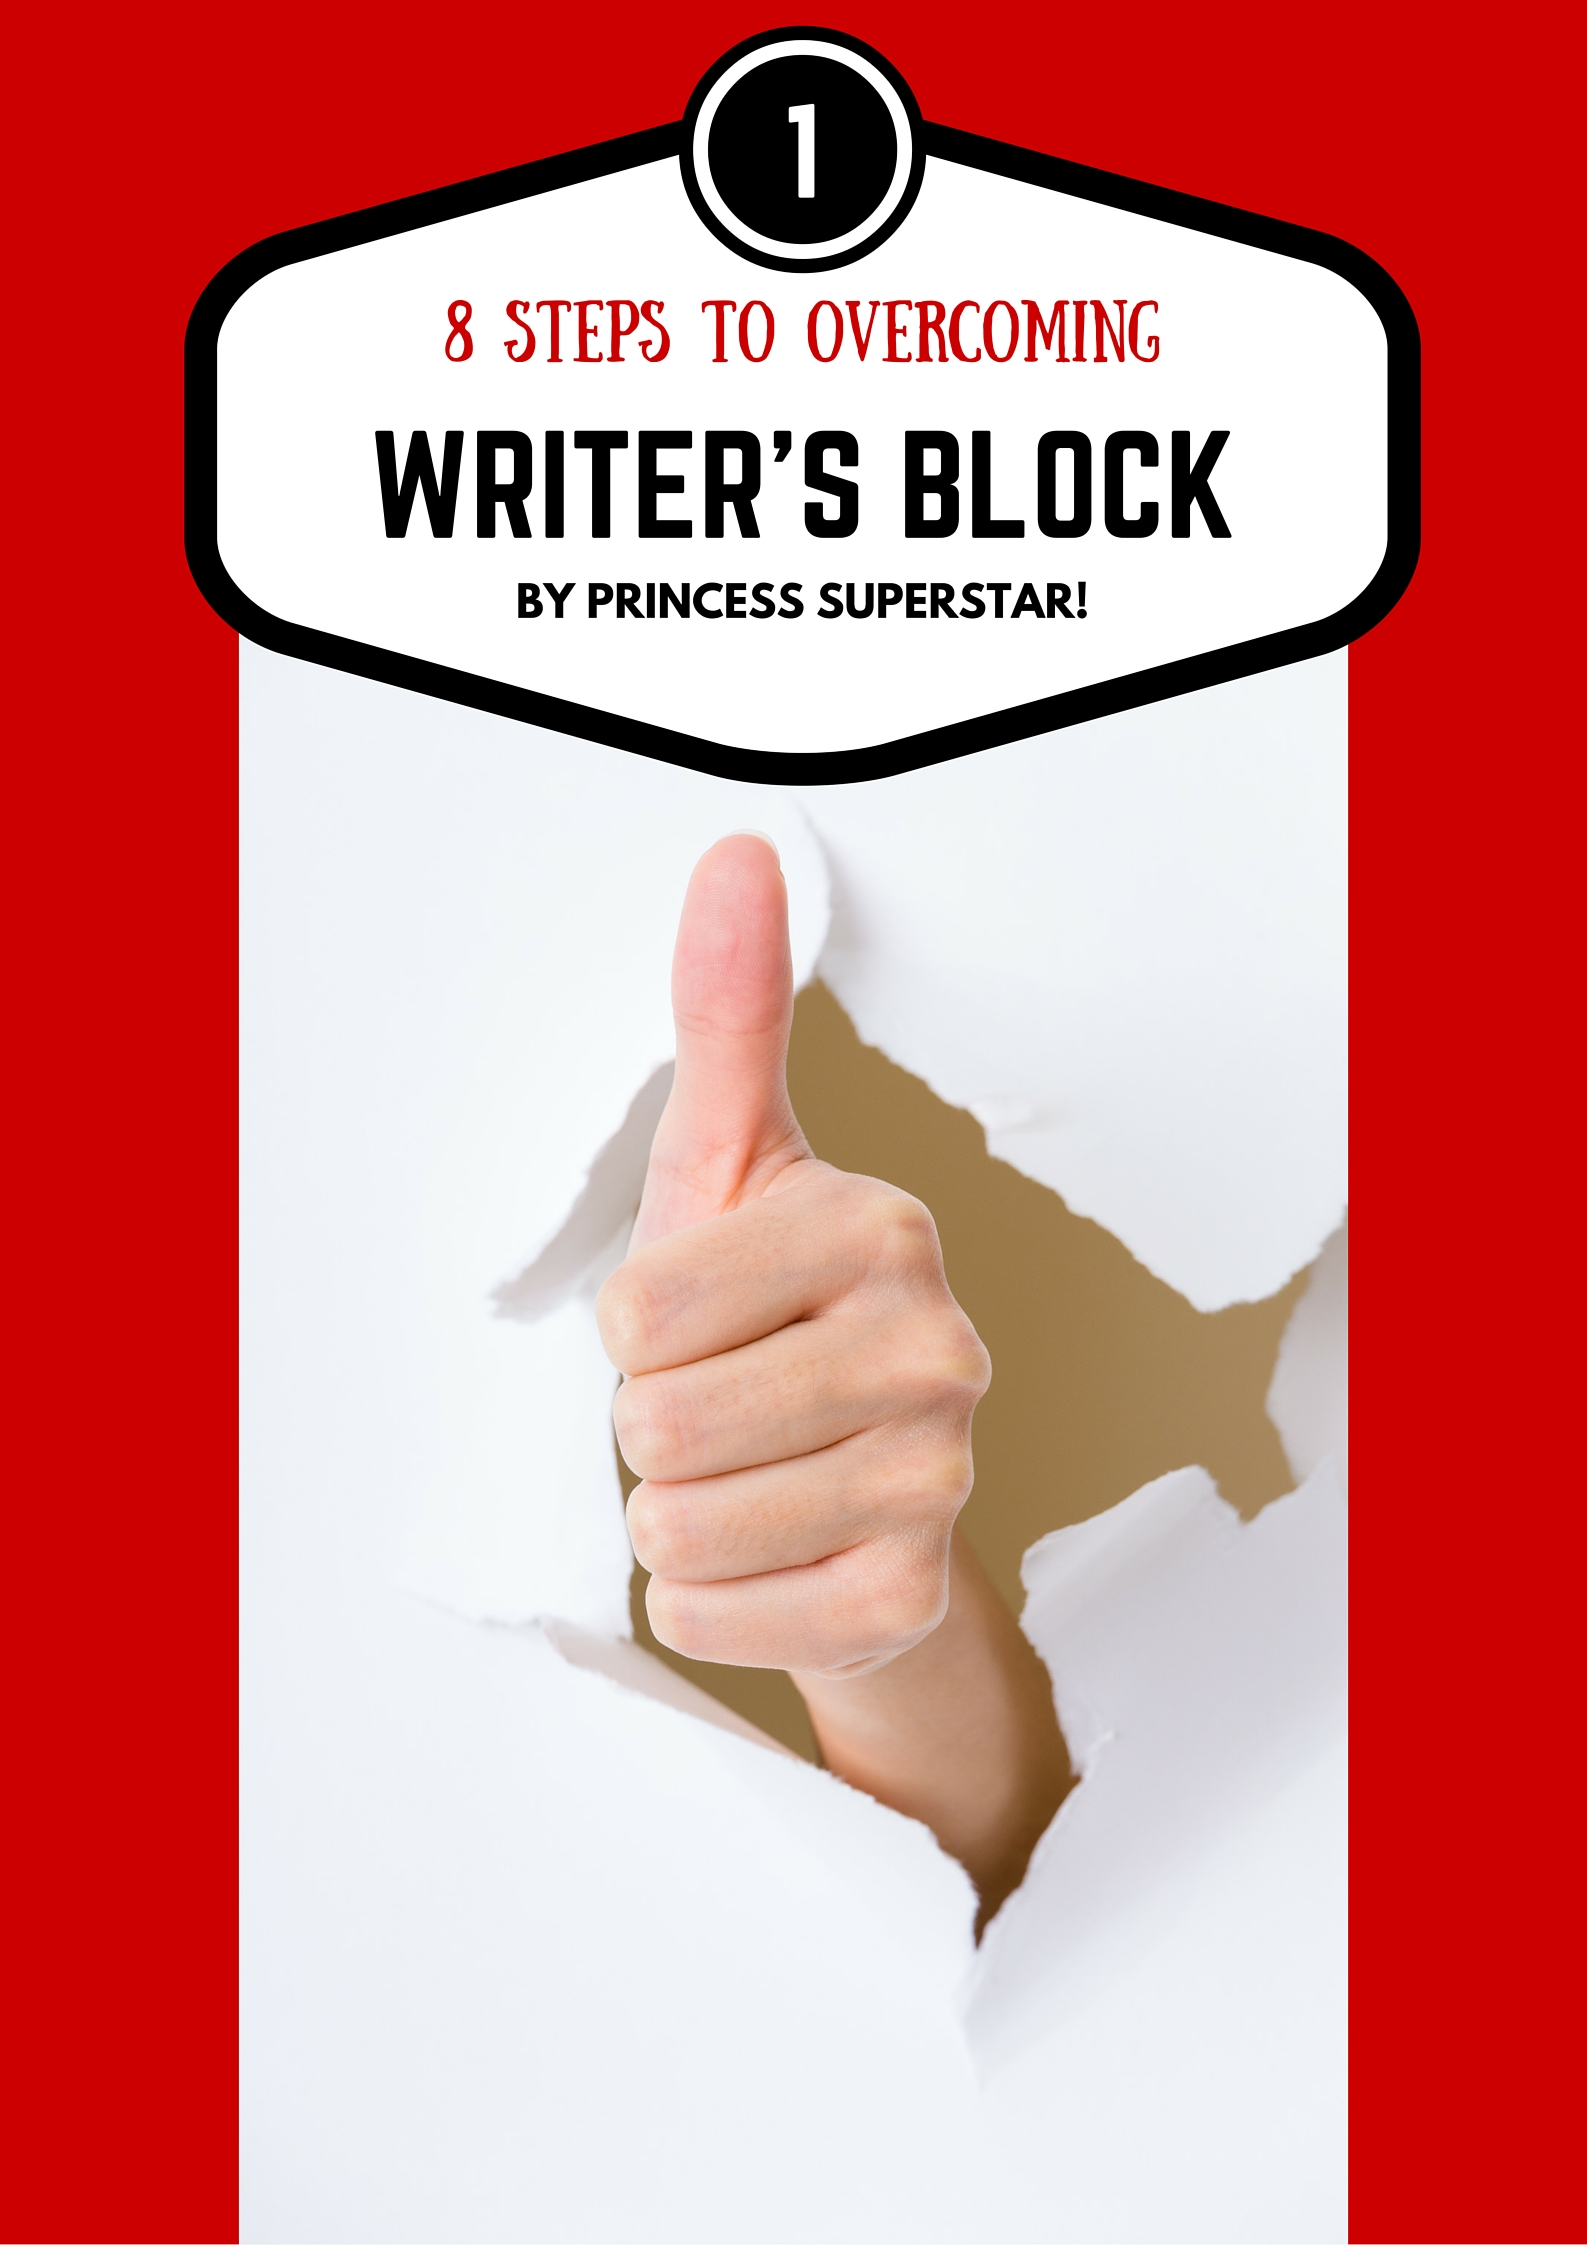 Eight Steps to overcoming Writer's Block Image